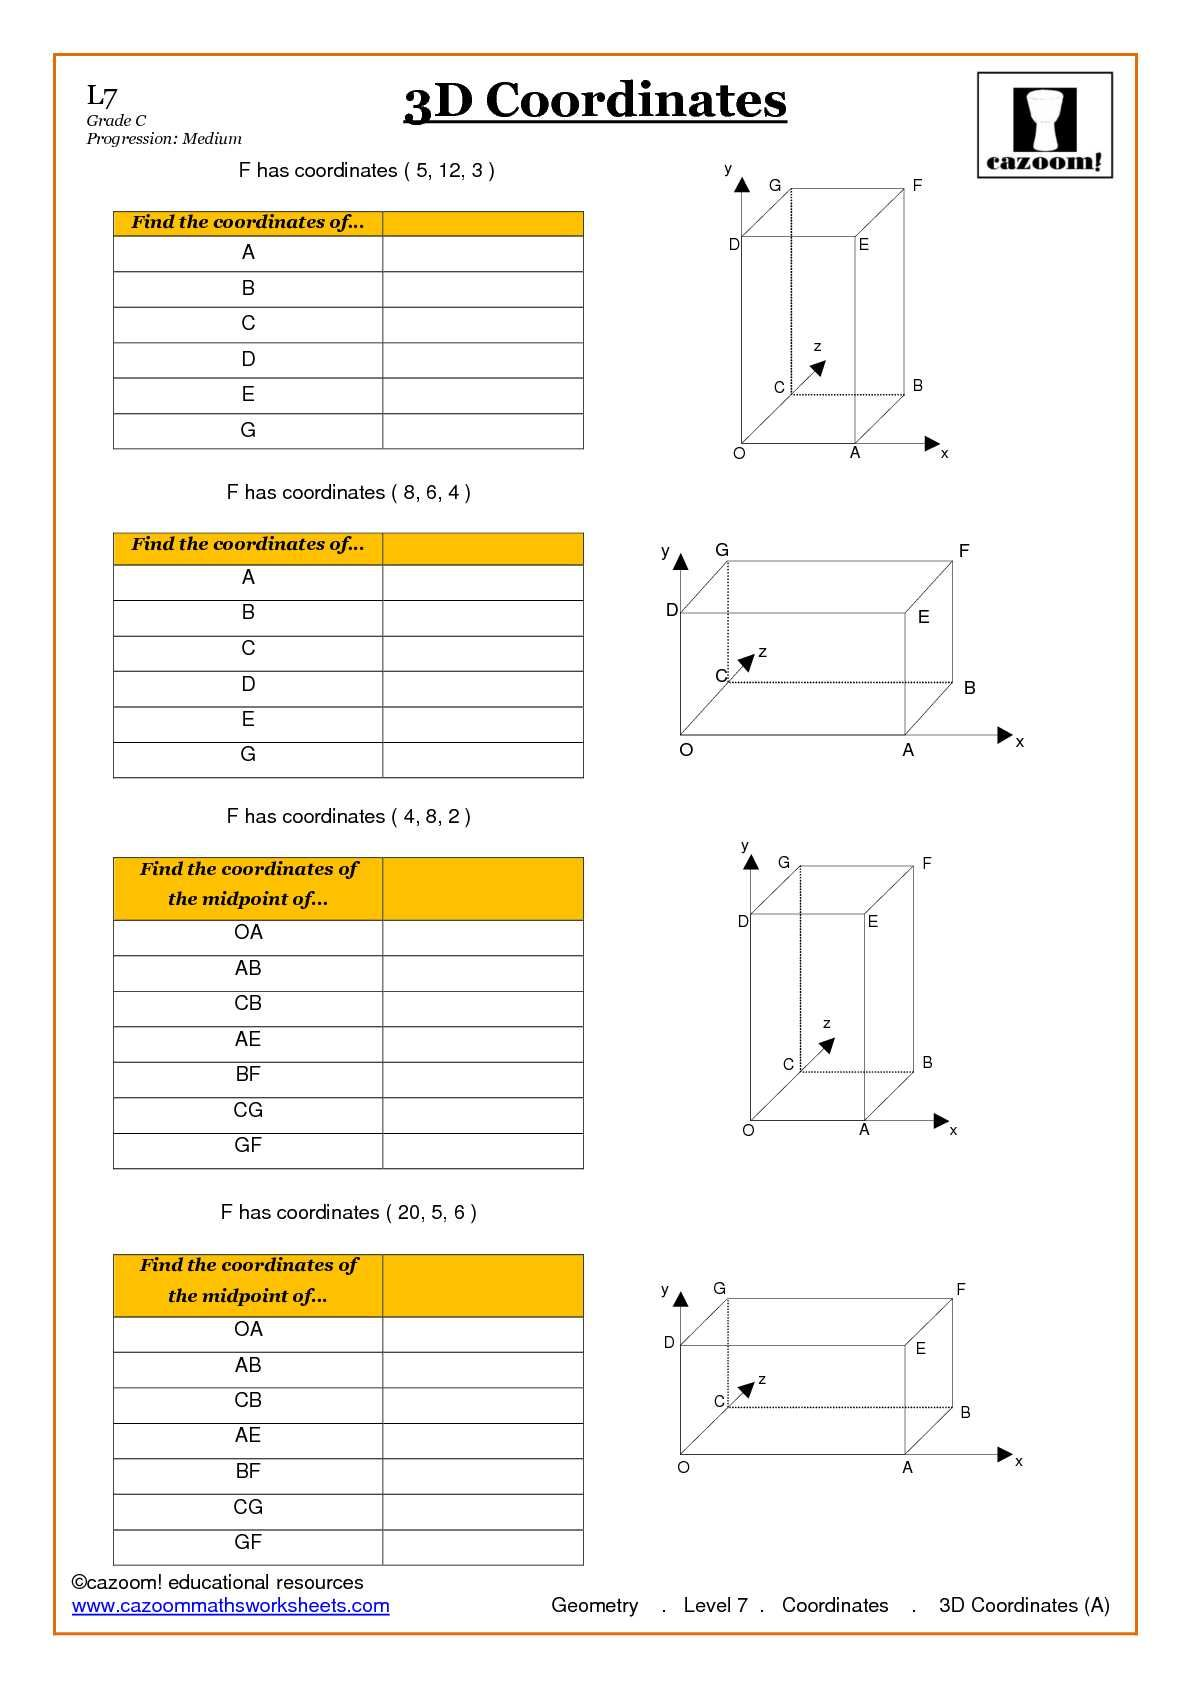 Uncategorized Ks3 Math Worksheets fractions and percentages worksheets number geometry coordinate worksheet ks4 ks3